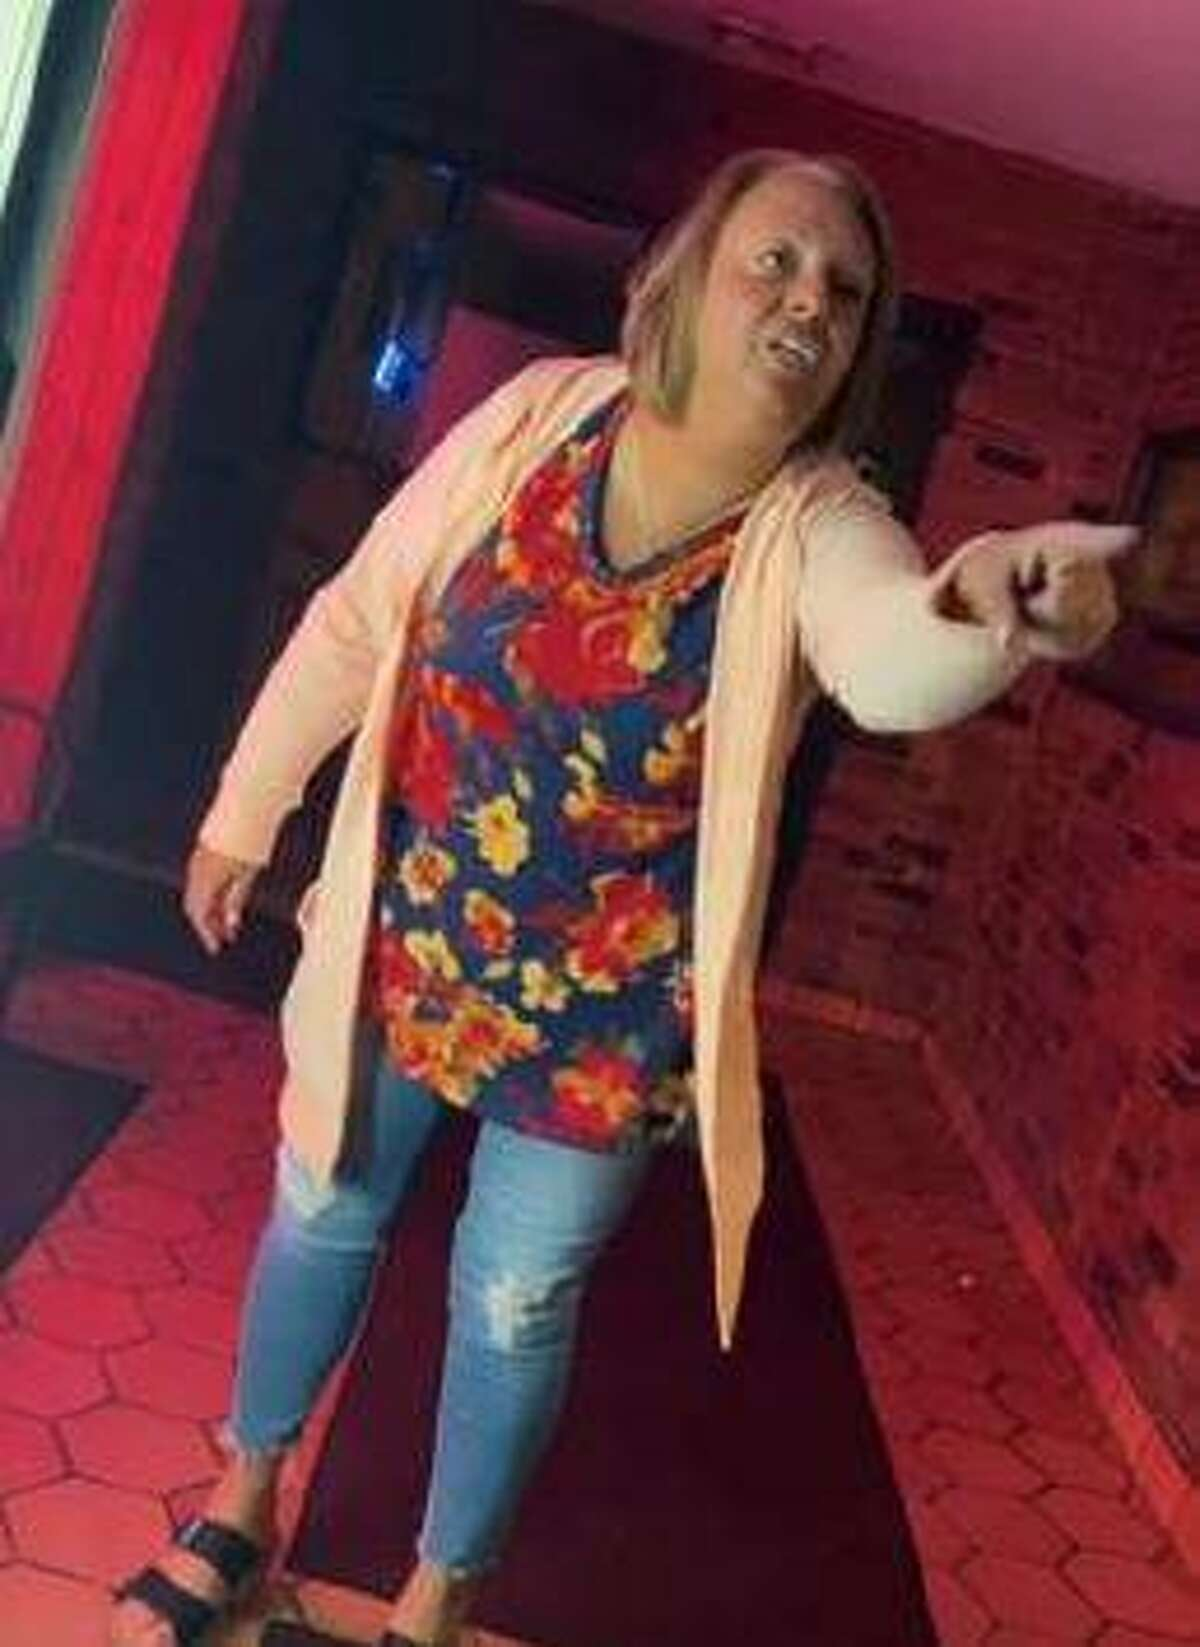 Police are looking for this woman who allegedly assaulted a customer in a Berlin pizza shop late Saturday night.